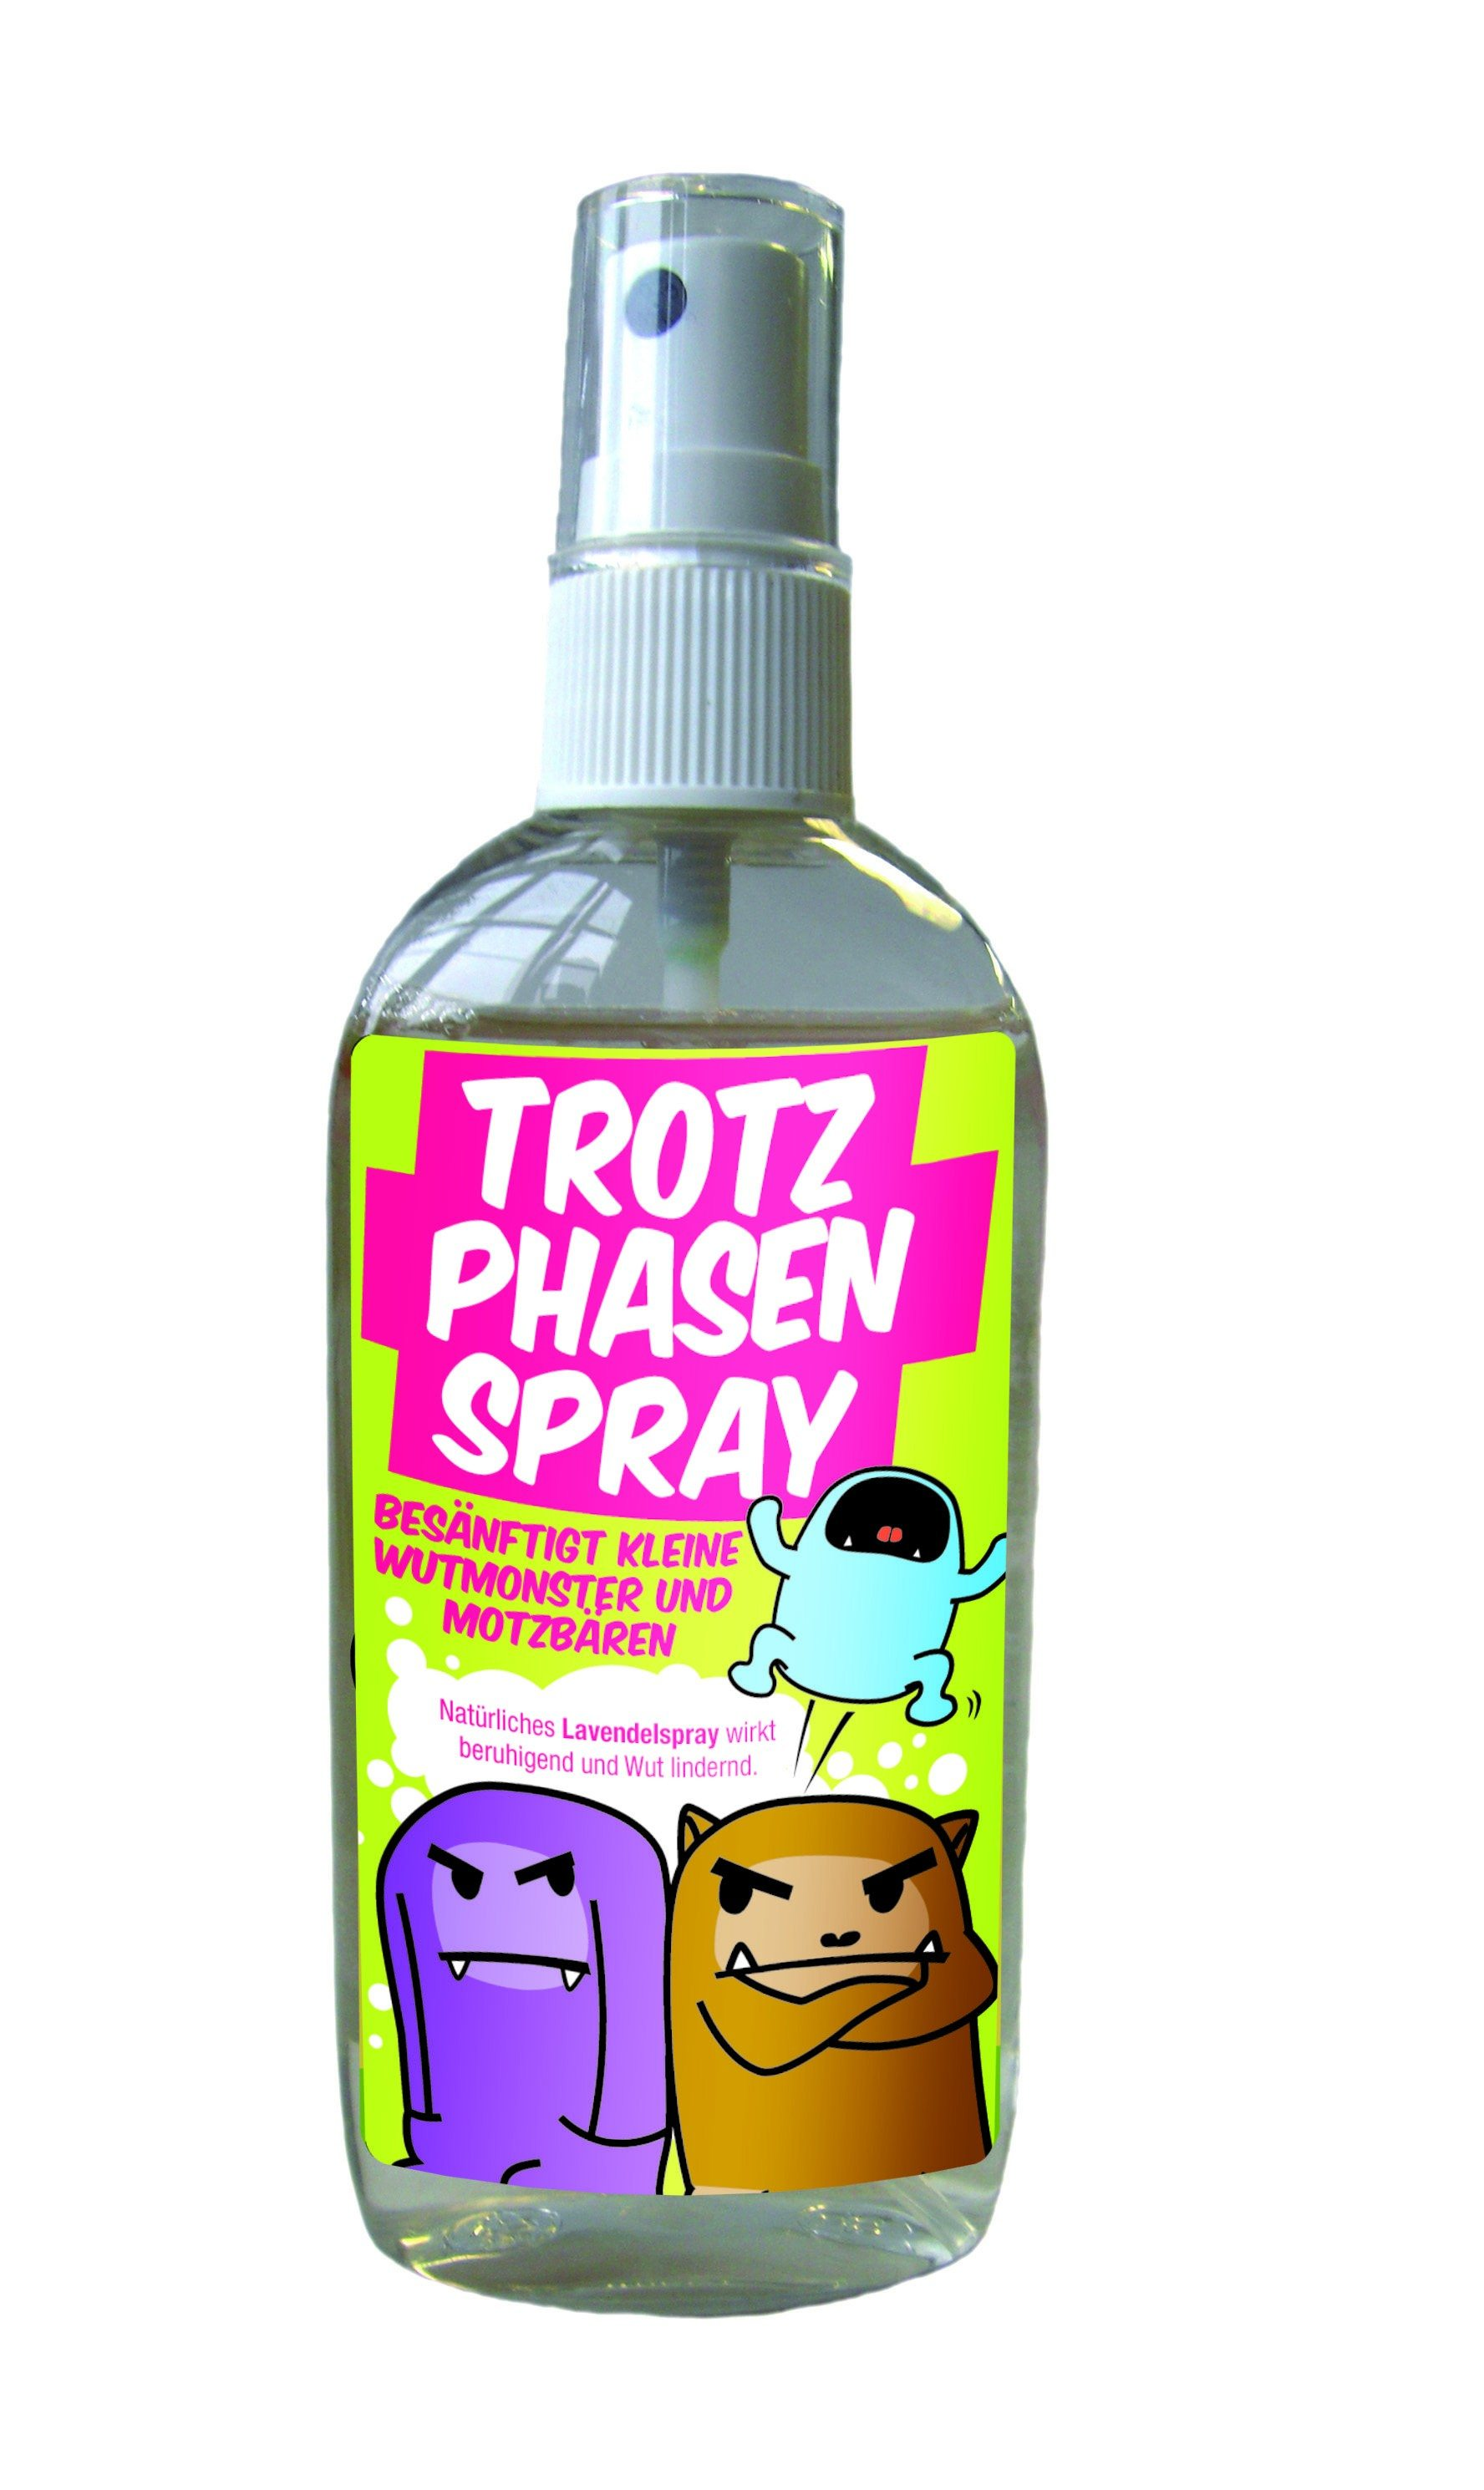 Trotz-Phasen Spray